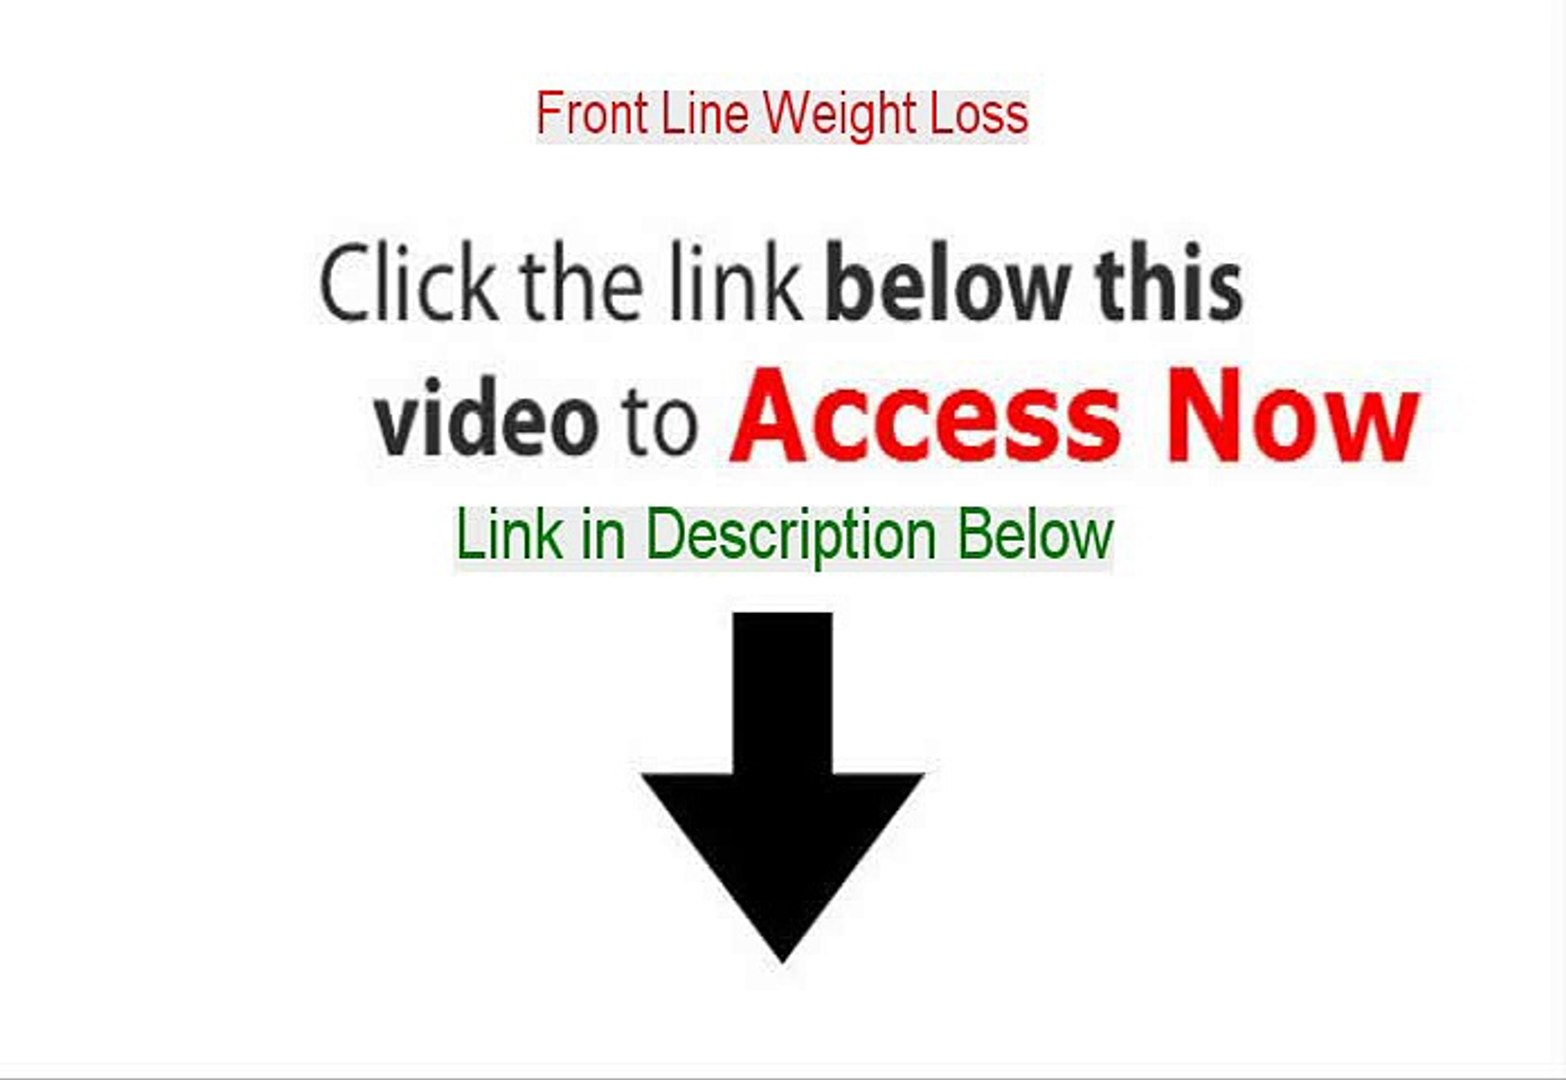 Front Line Weight Loss Free PDF - Front Line Weight Loss 2015